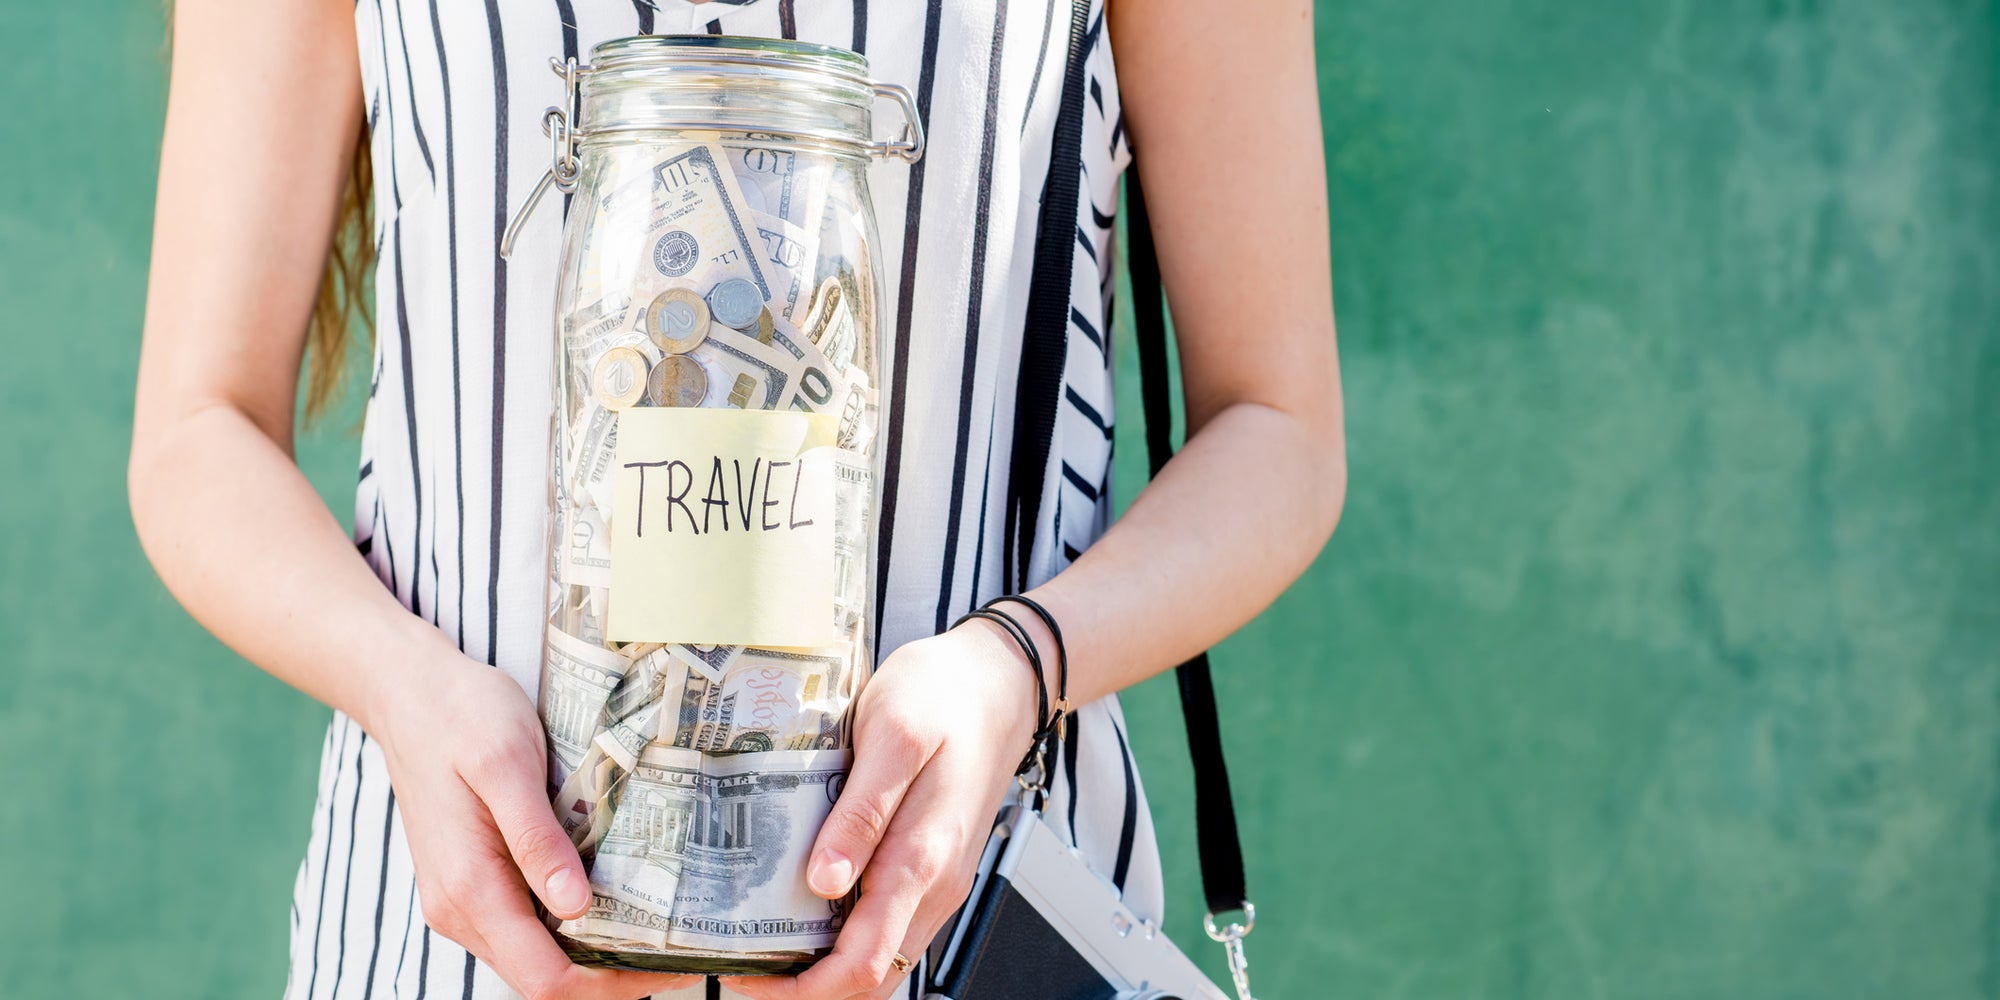 Woman holding travel jar